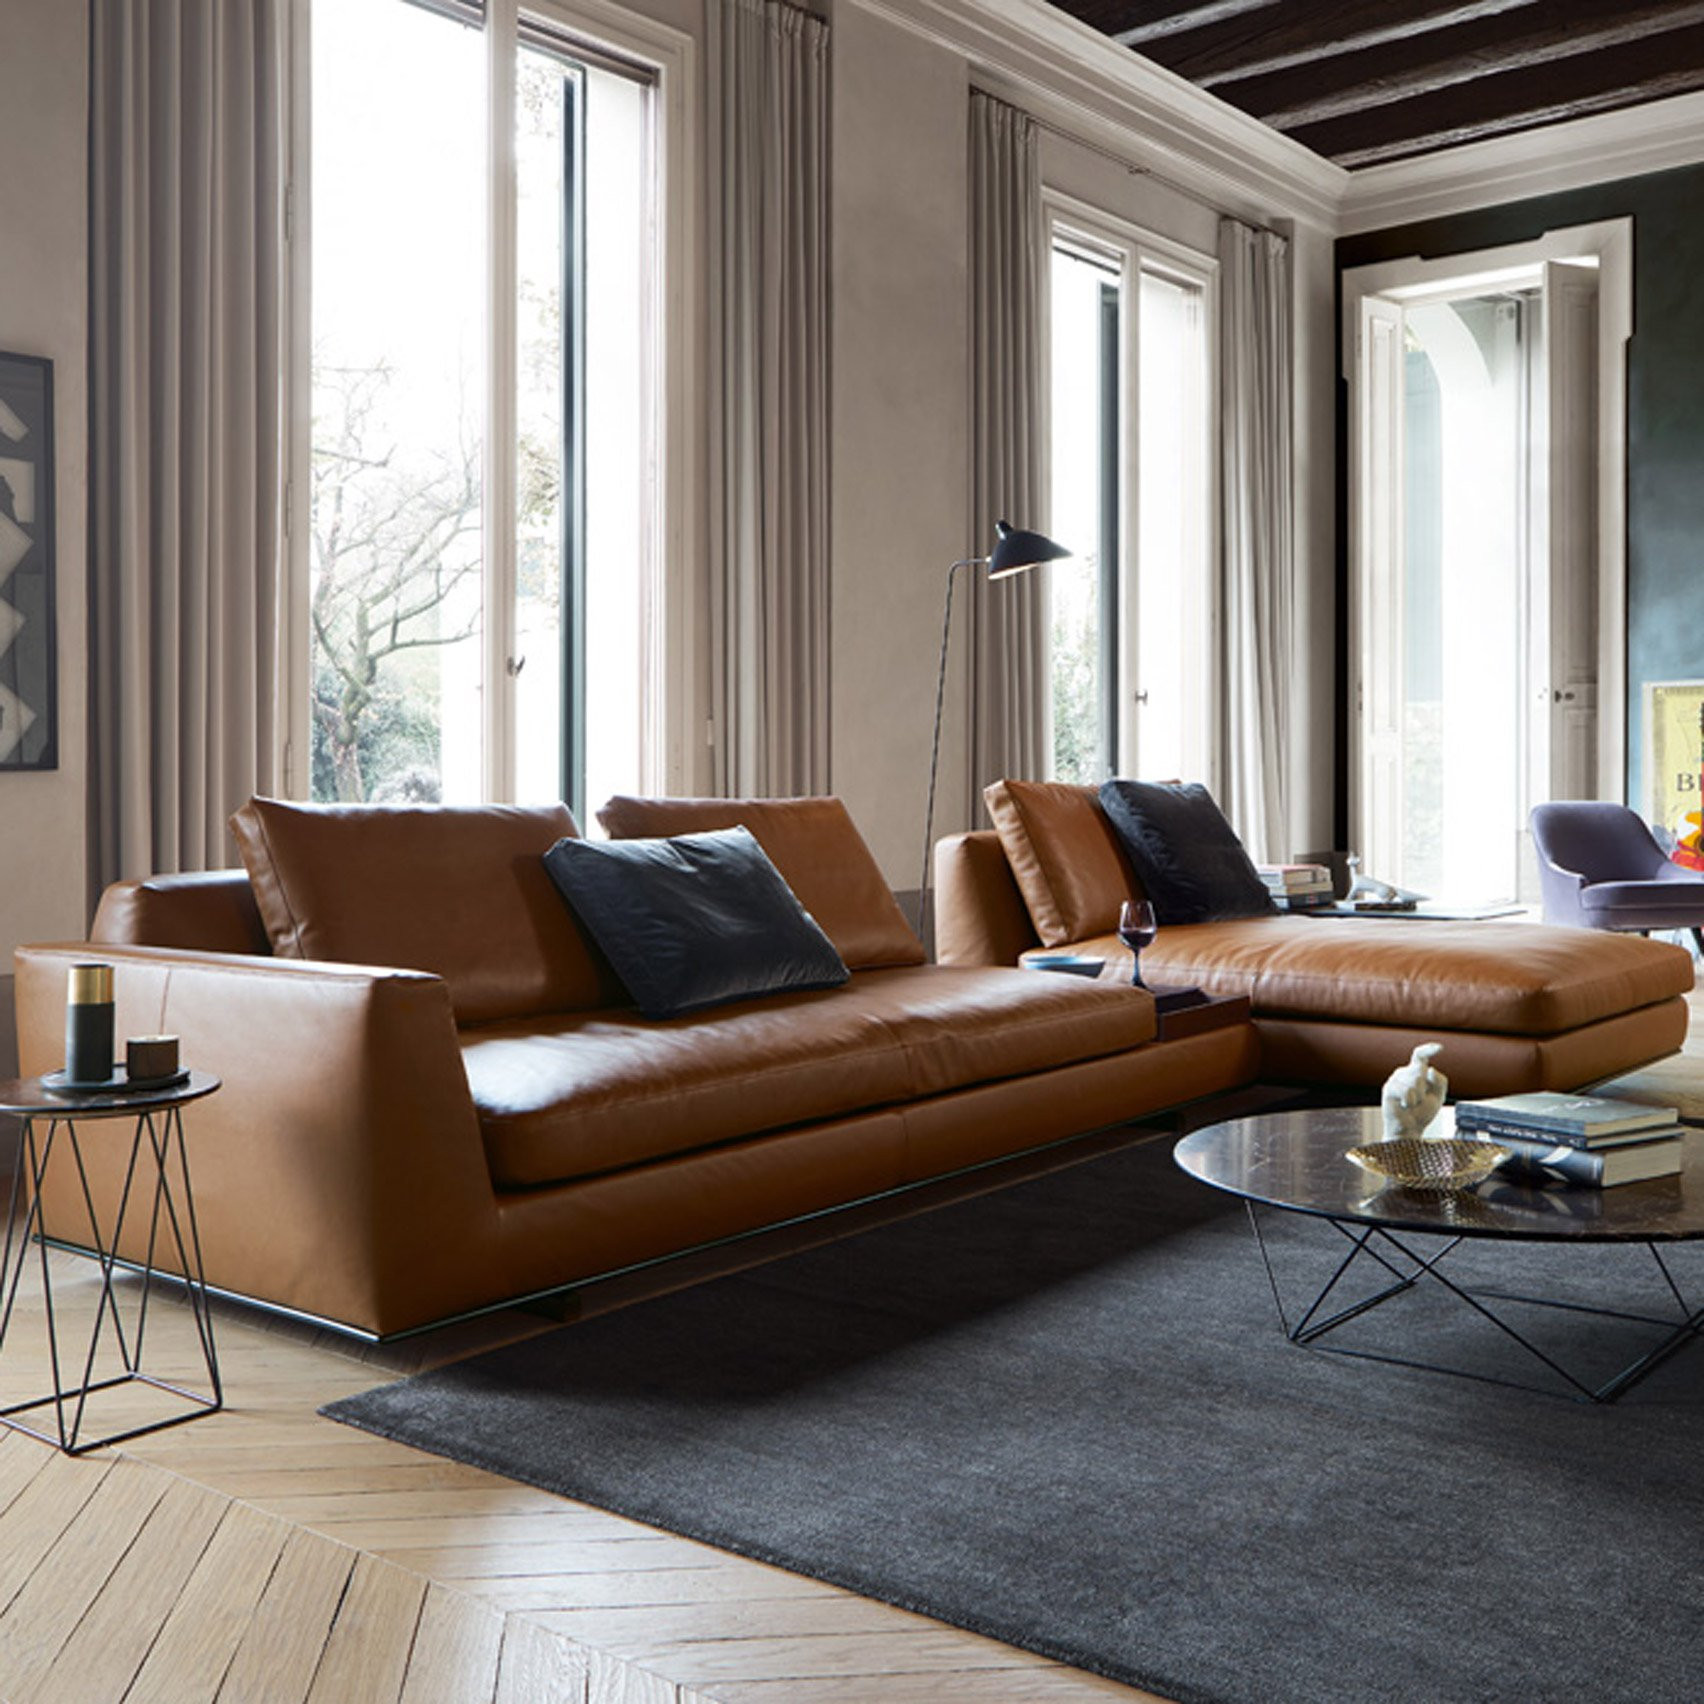 walter knoll walter knoll to present sofa with integrated. Black Bedroom Furniture Sets. Home Design Ideas